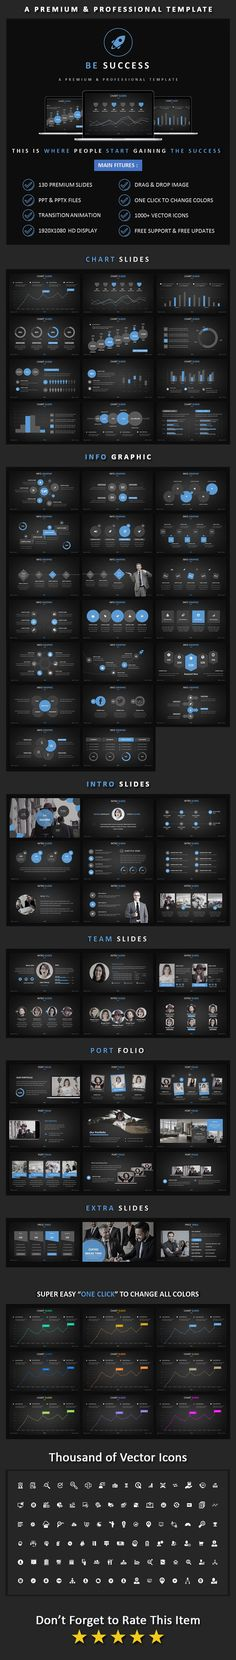 Be Success Powerpoint - Business #PowerPoint #Templates Download here: https://graphicriver.net/item/be-success-powerpoint/20292222?ref=alena994